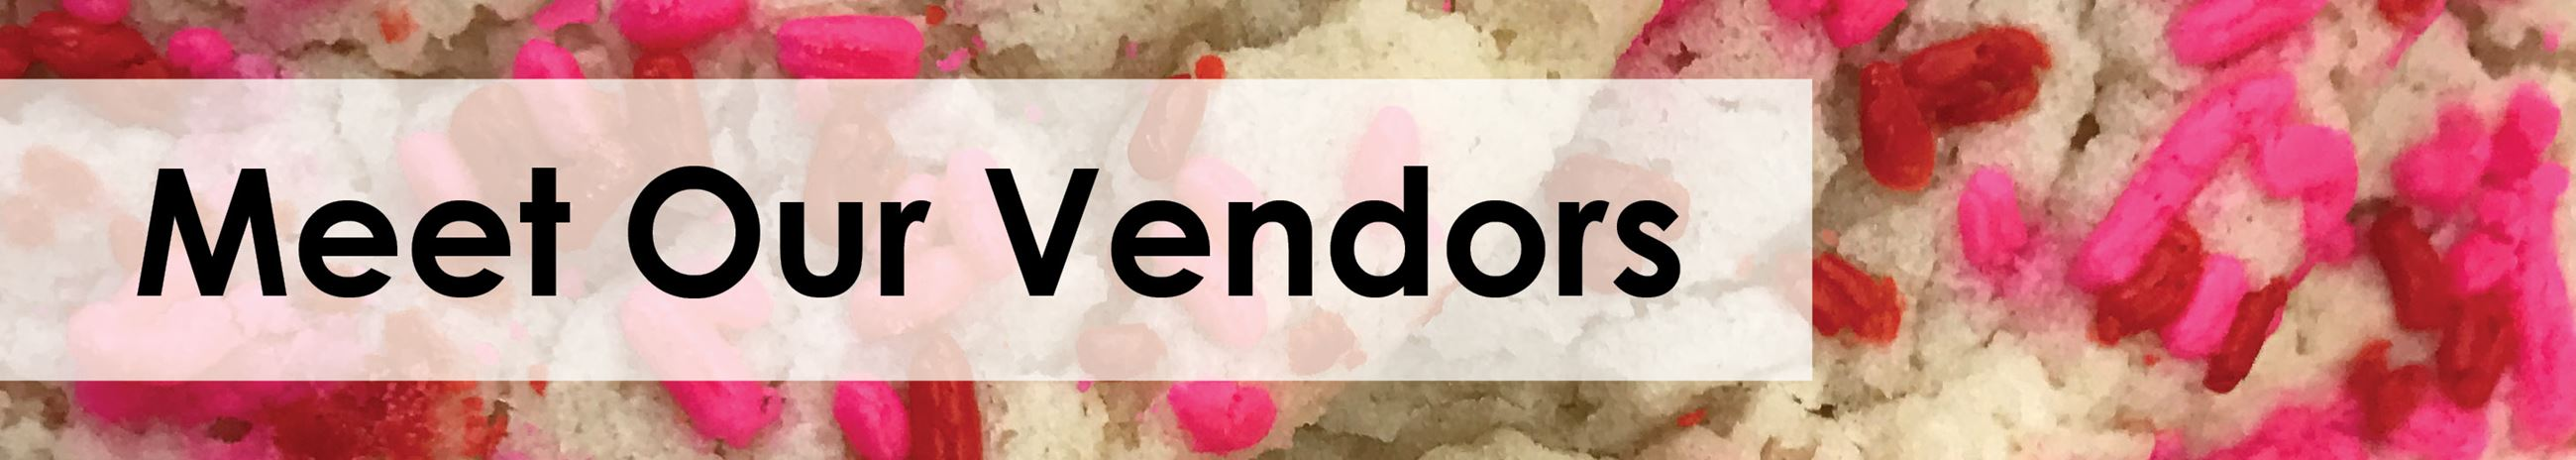 meet_our_vendors_winter